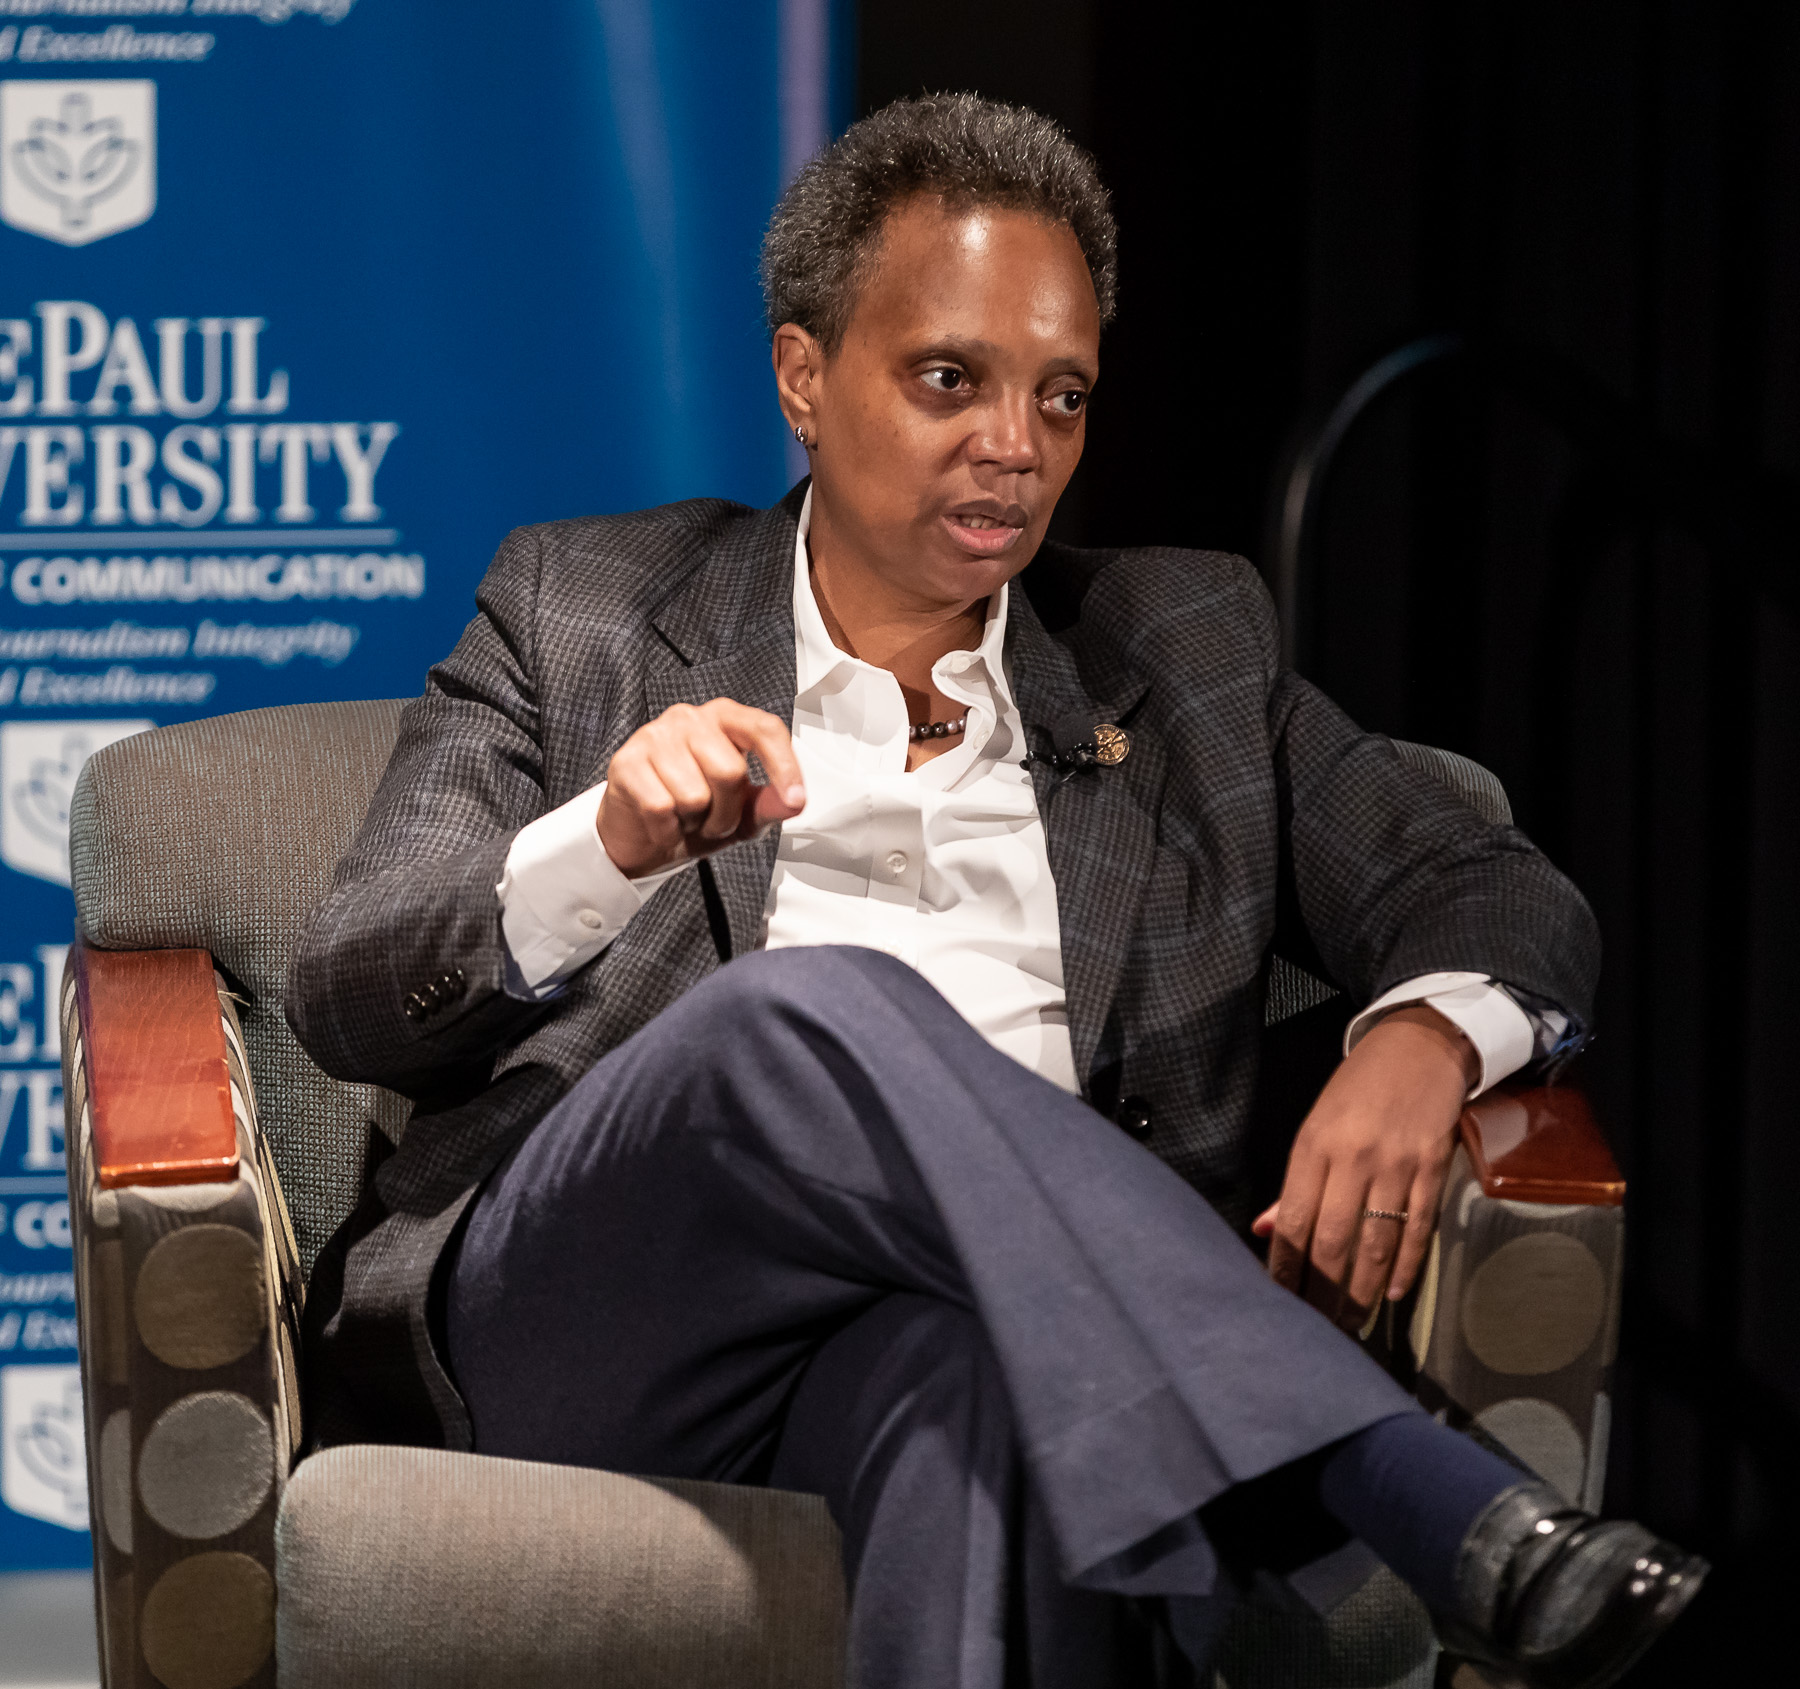 Chicago Mayor Lori Lightfoot reacts to a question during a forum with DePaul University journalism and public relations students. (DePaul University/Jeff Carrion)